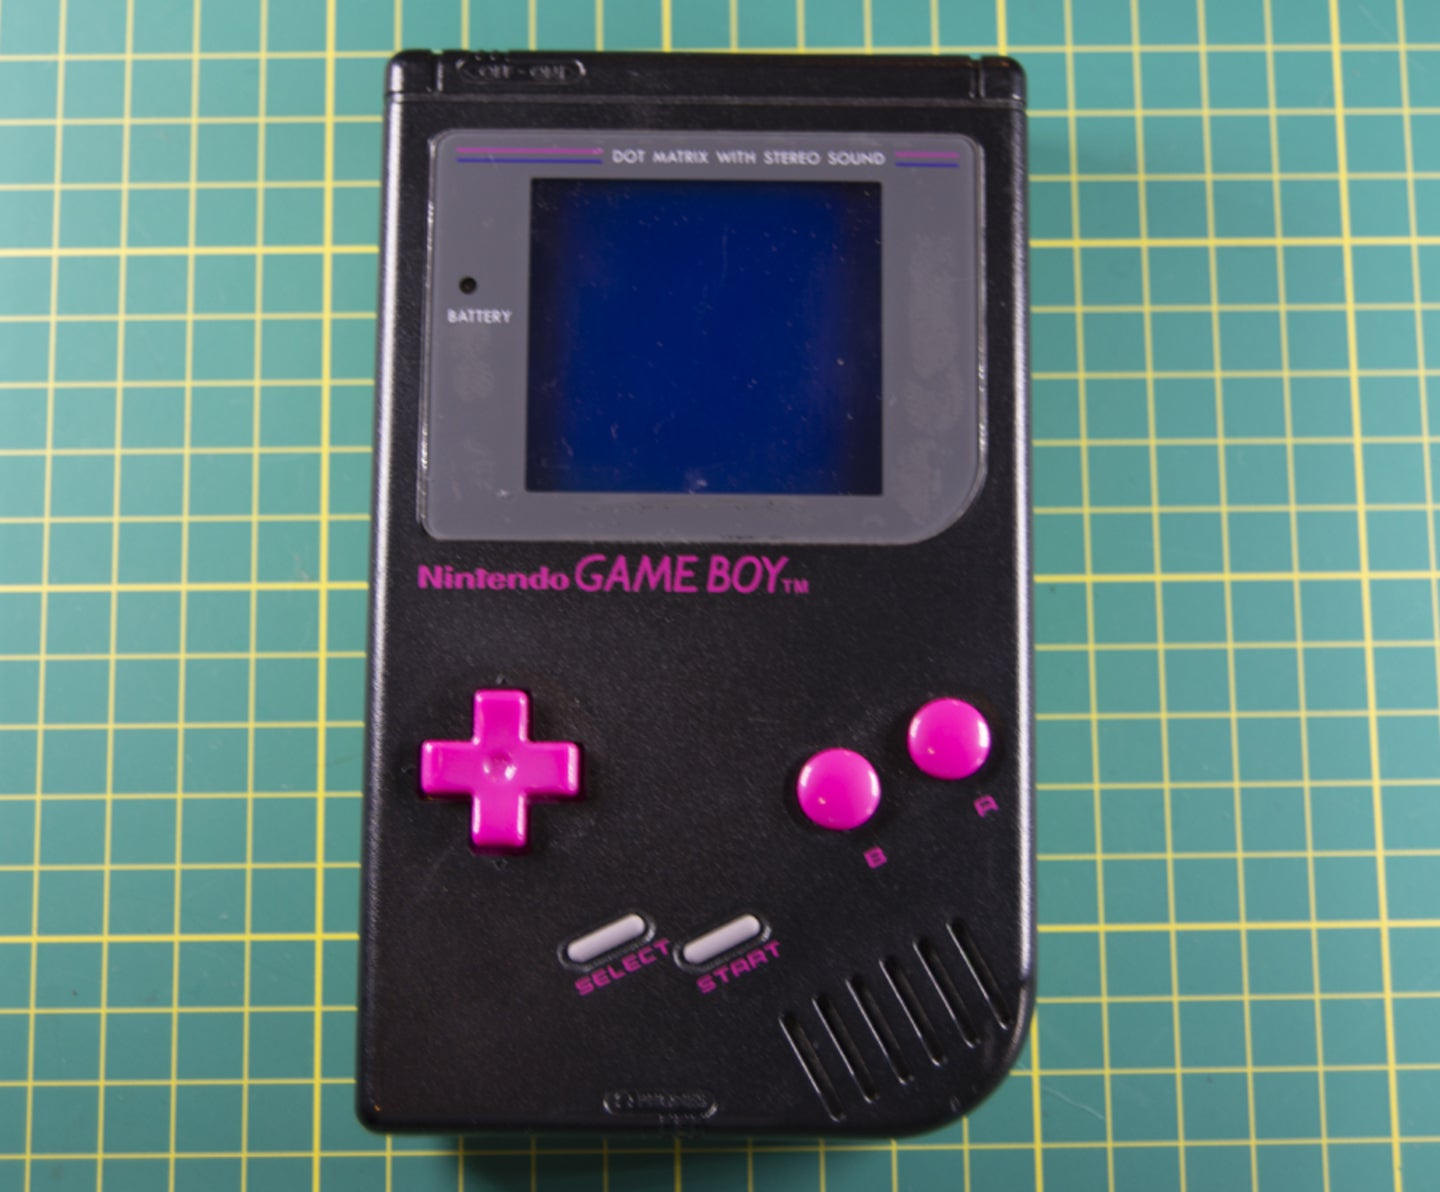 How install the bivert chip mod on an original Game Boy - howchoo